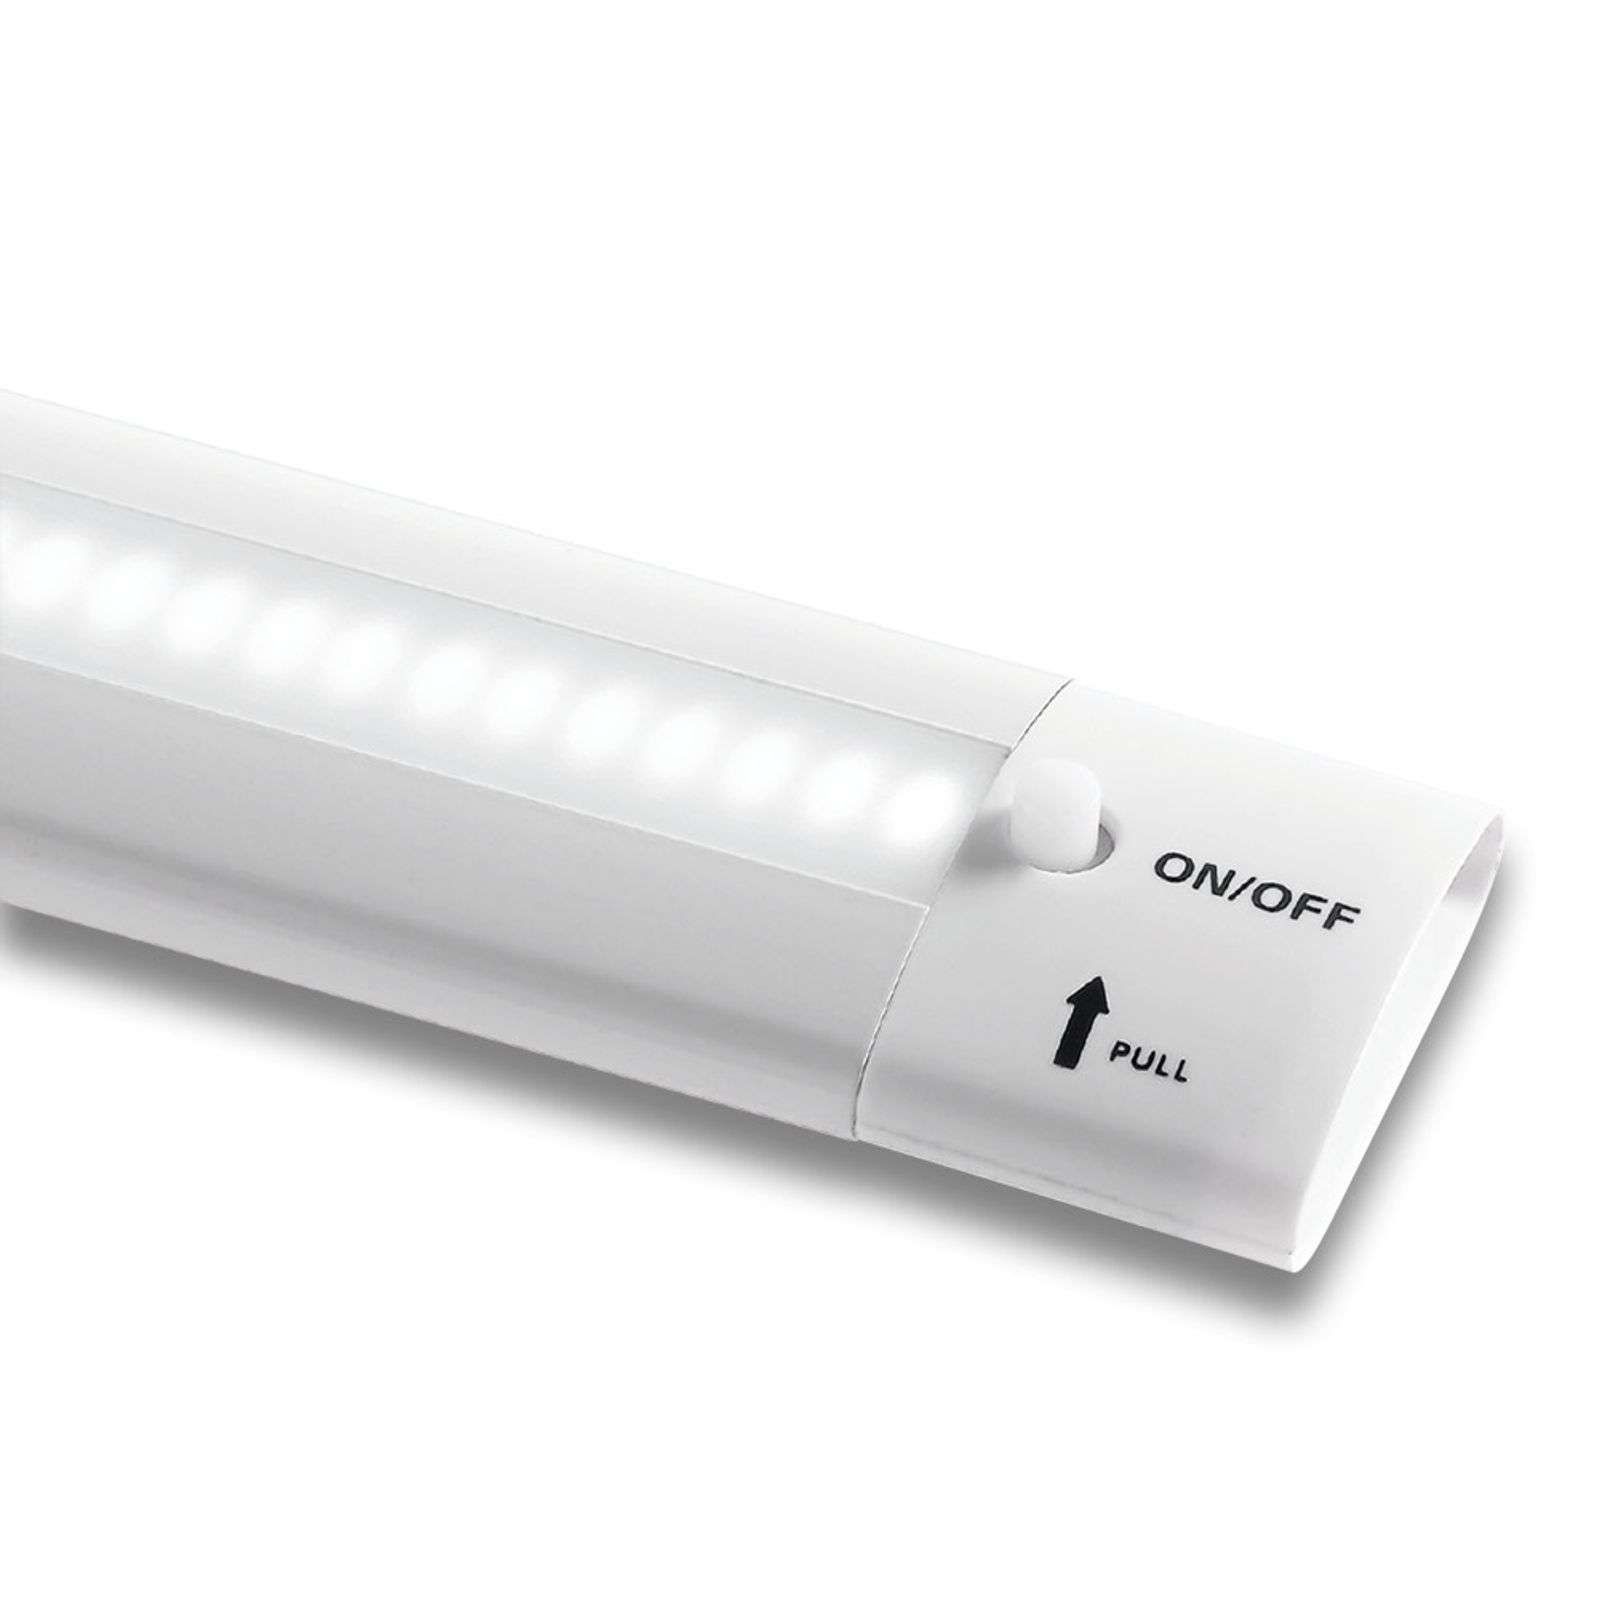 Lampada sottopensile LED 5W Galway 6690, bianco